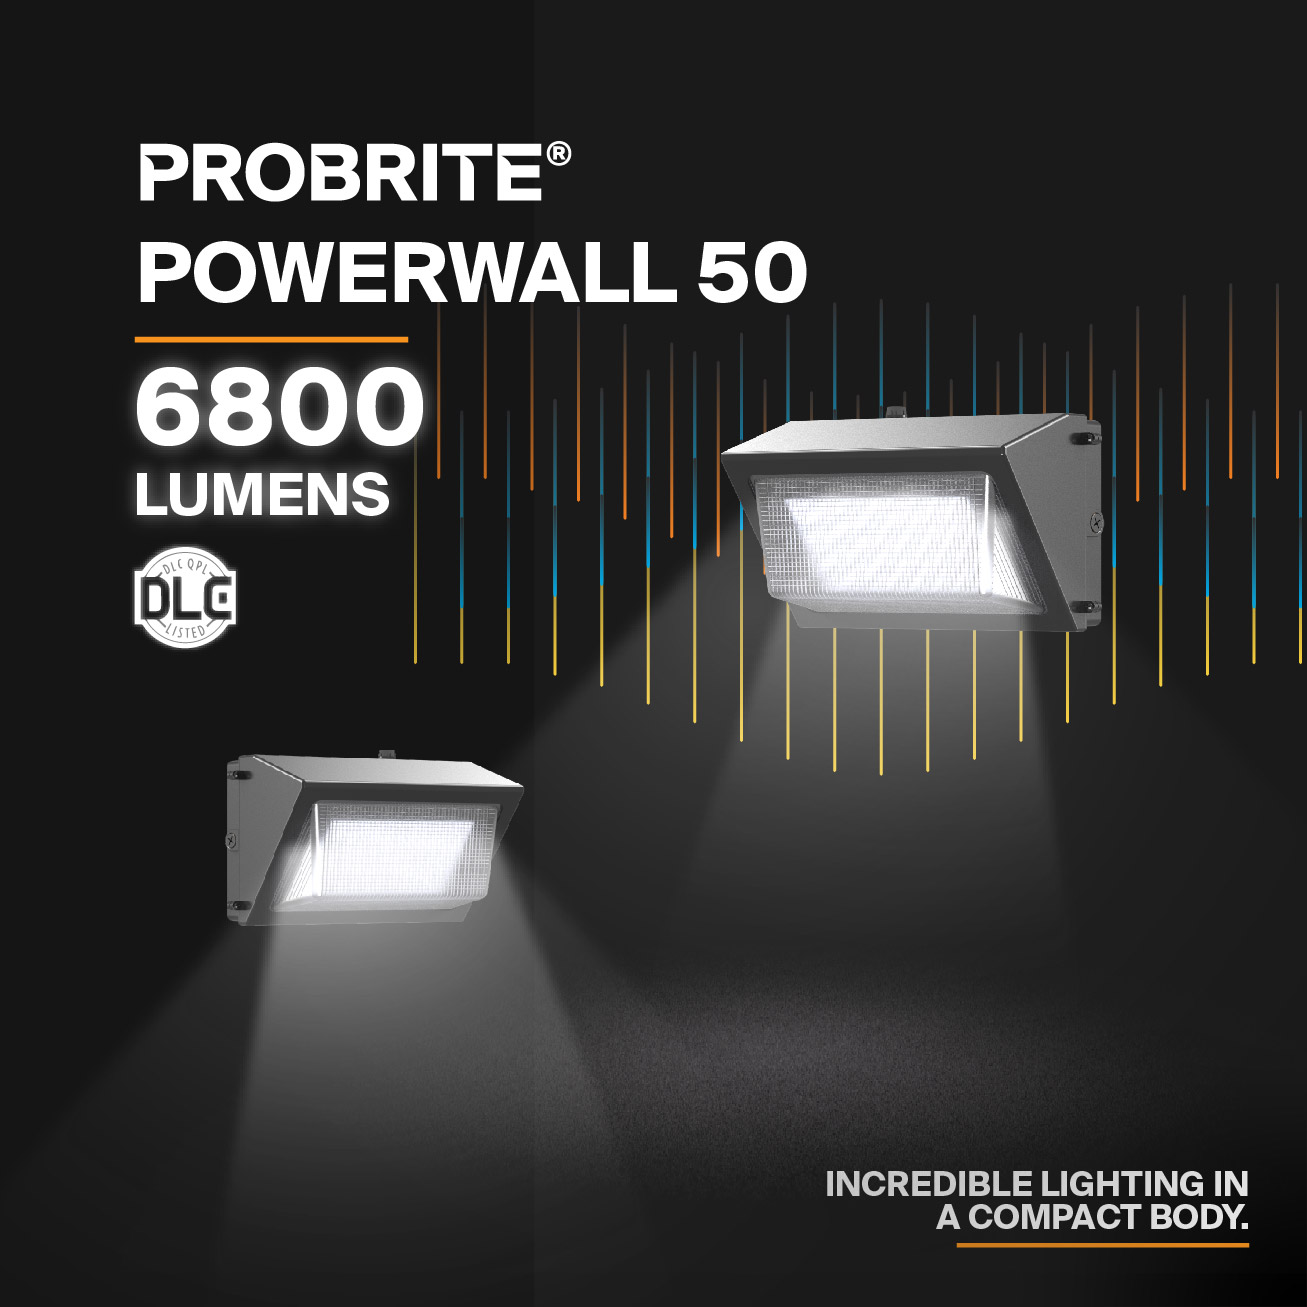 Probrite PowerWall50 LED Wall Pack Powerful